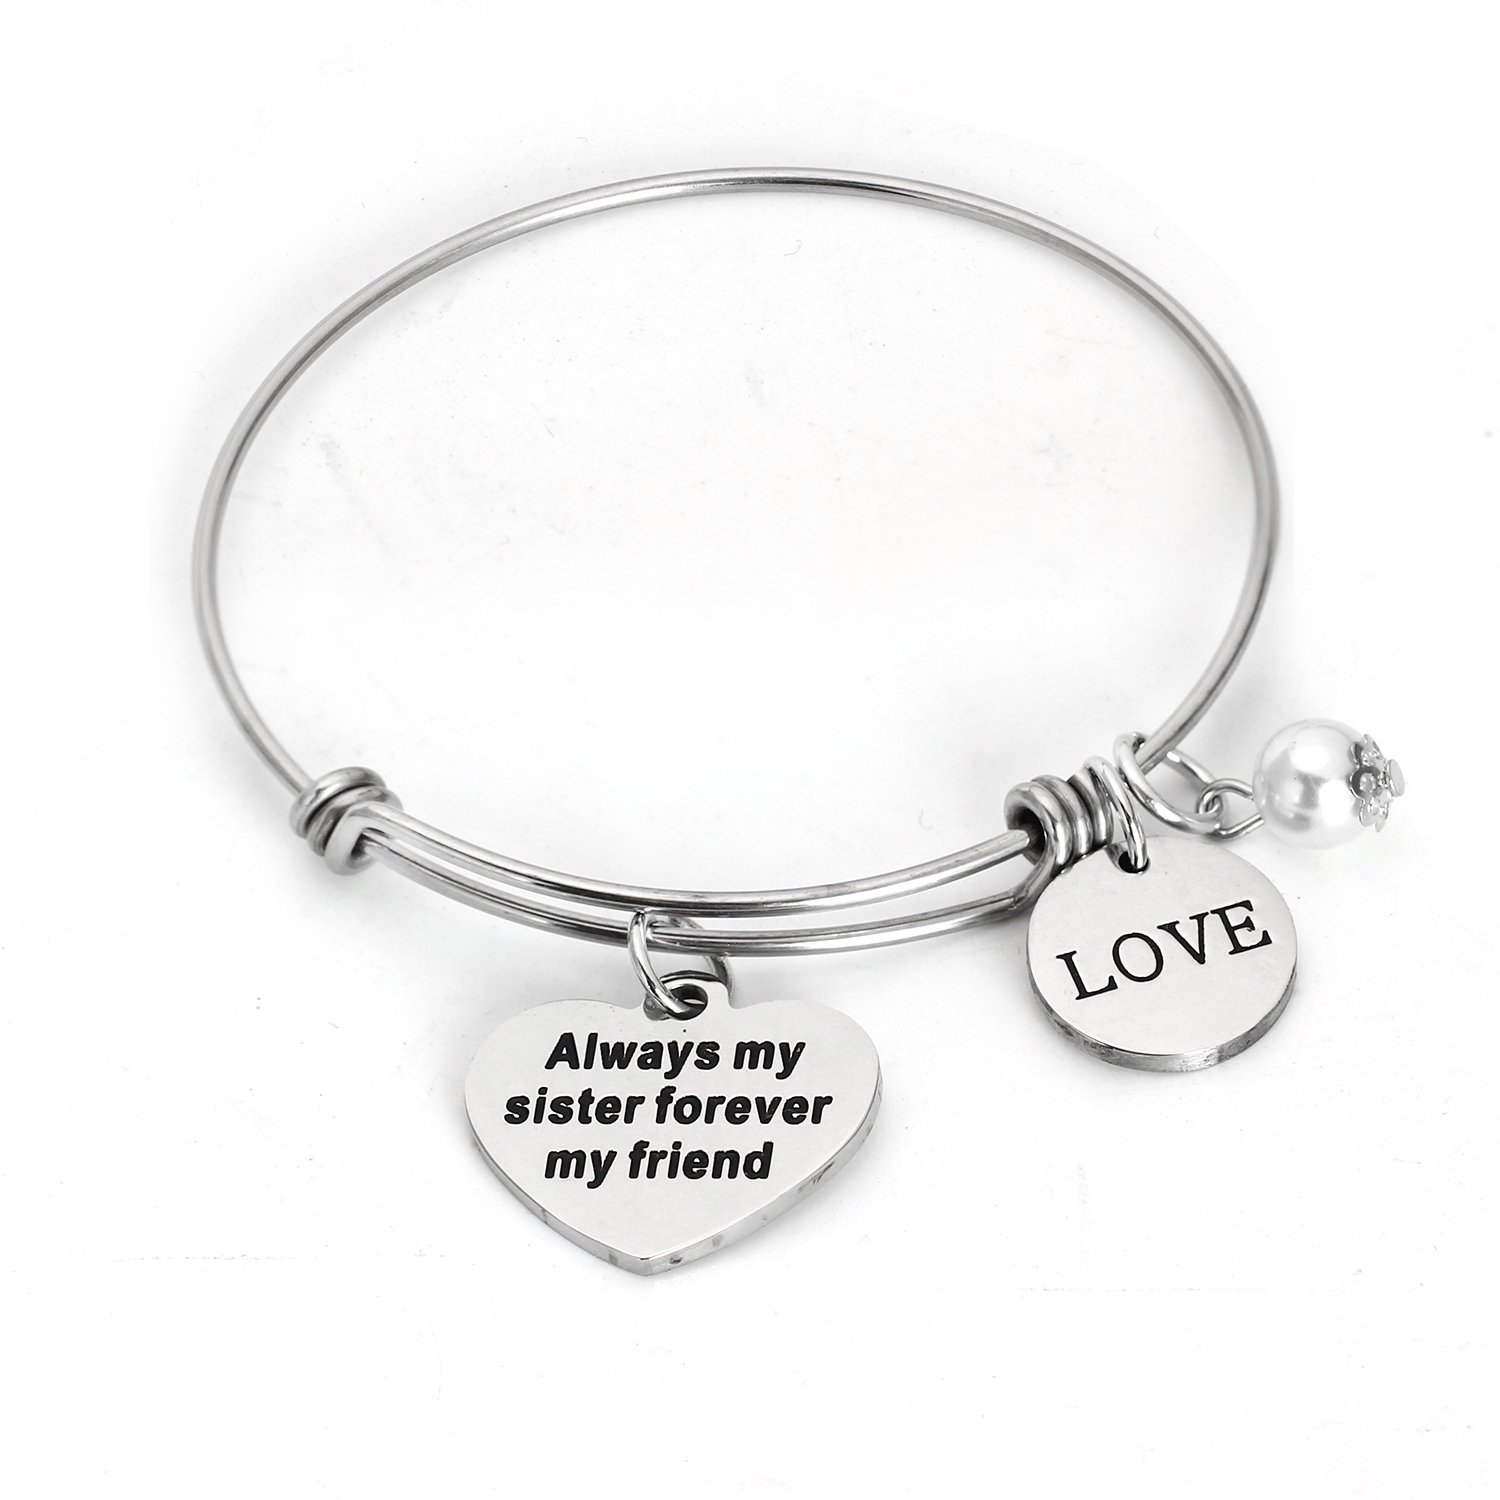 Always My Sister Forever My Friend Love Pearl Charms Bangle Bracelet, Personalized Sister Gift